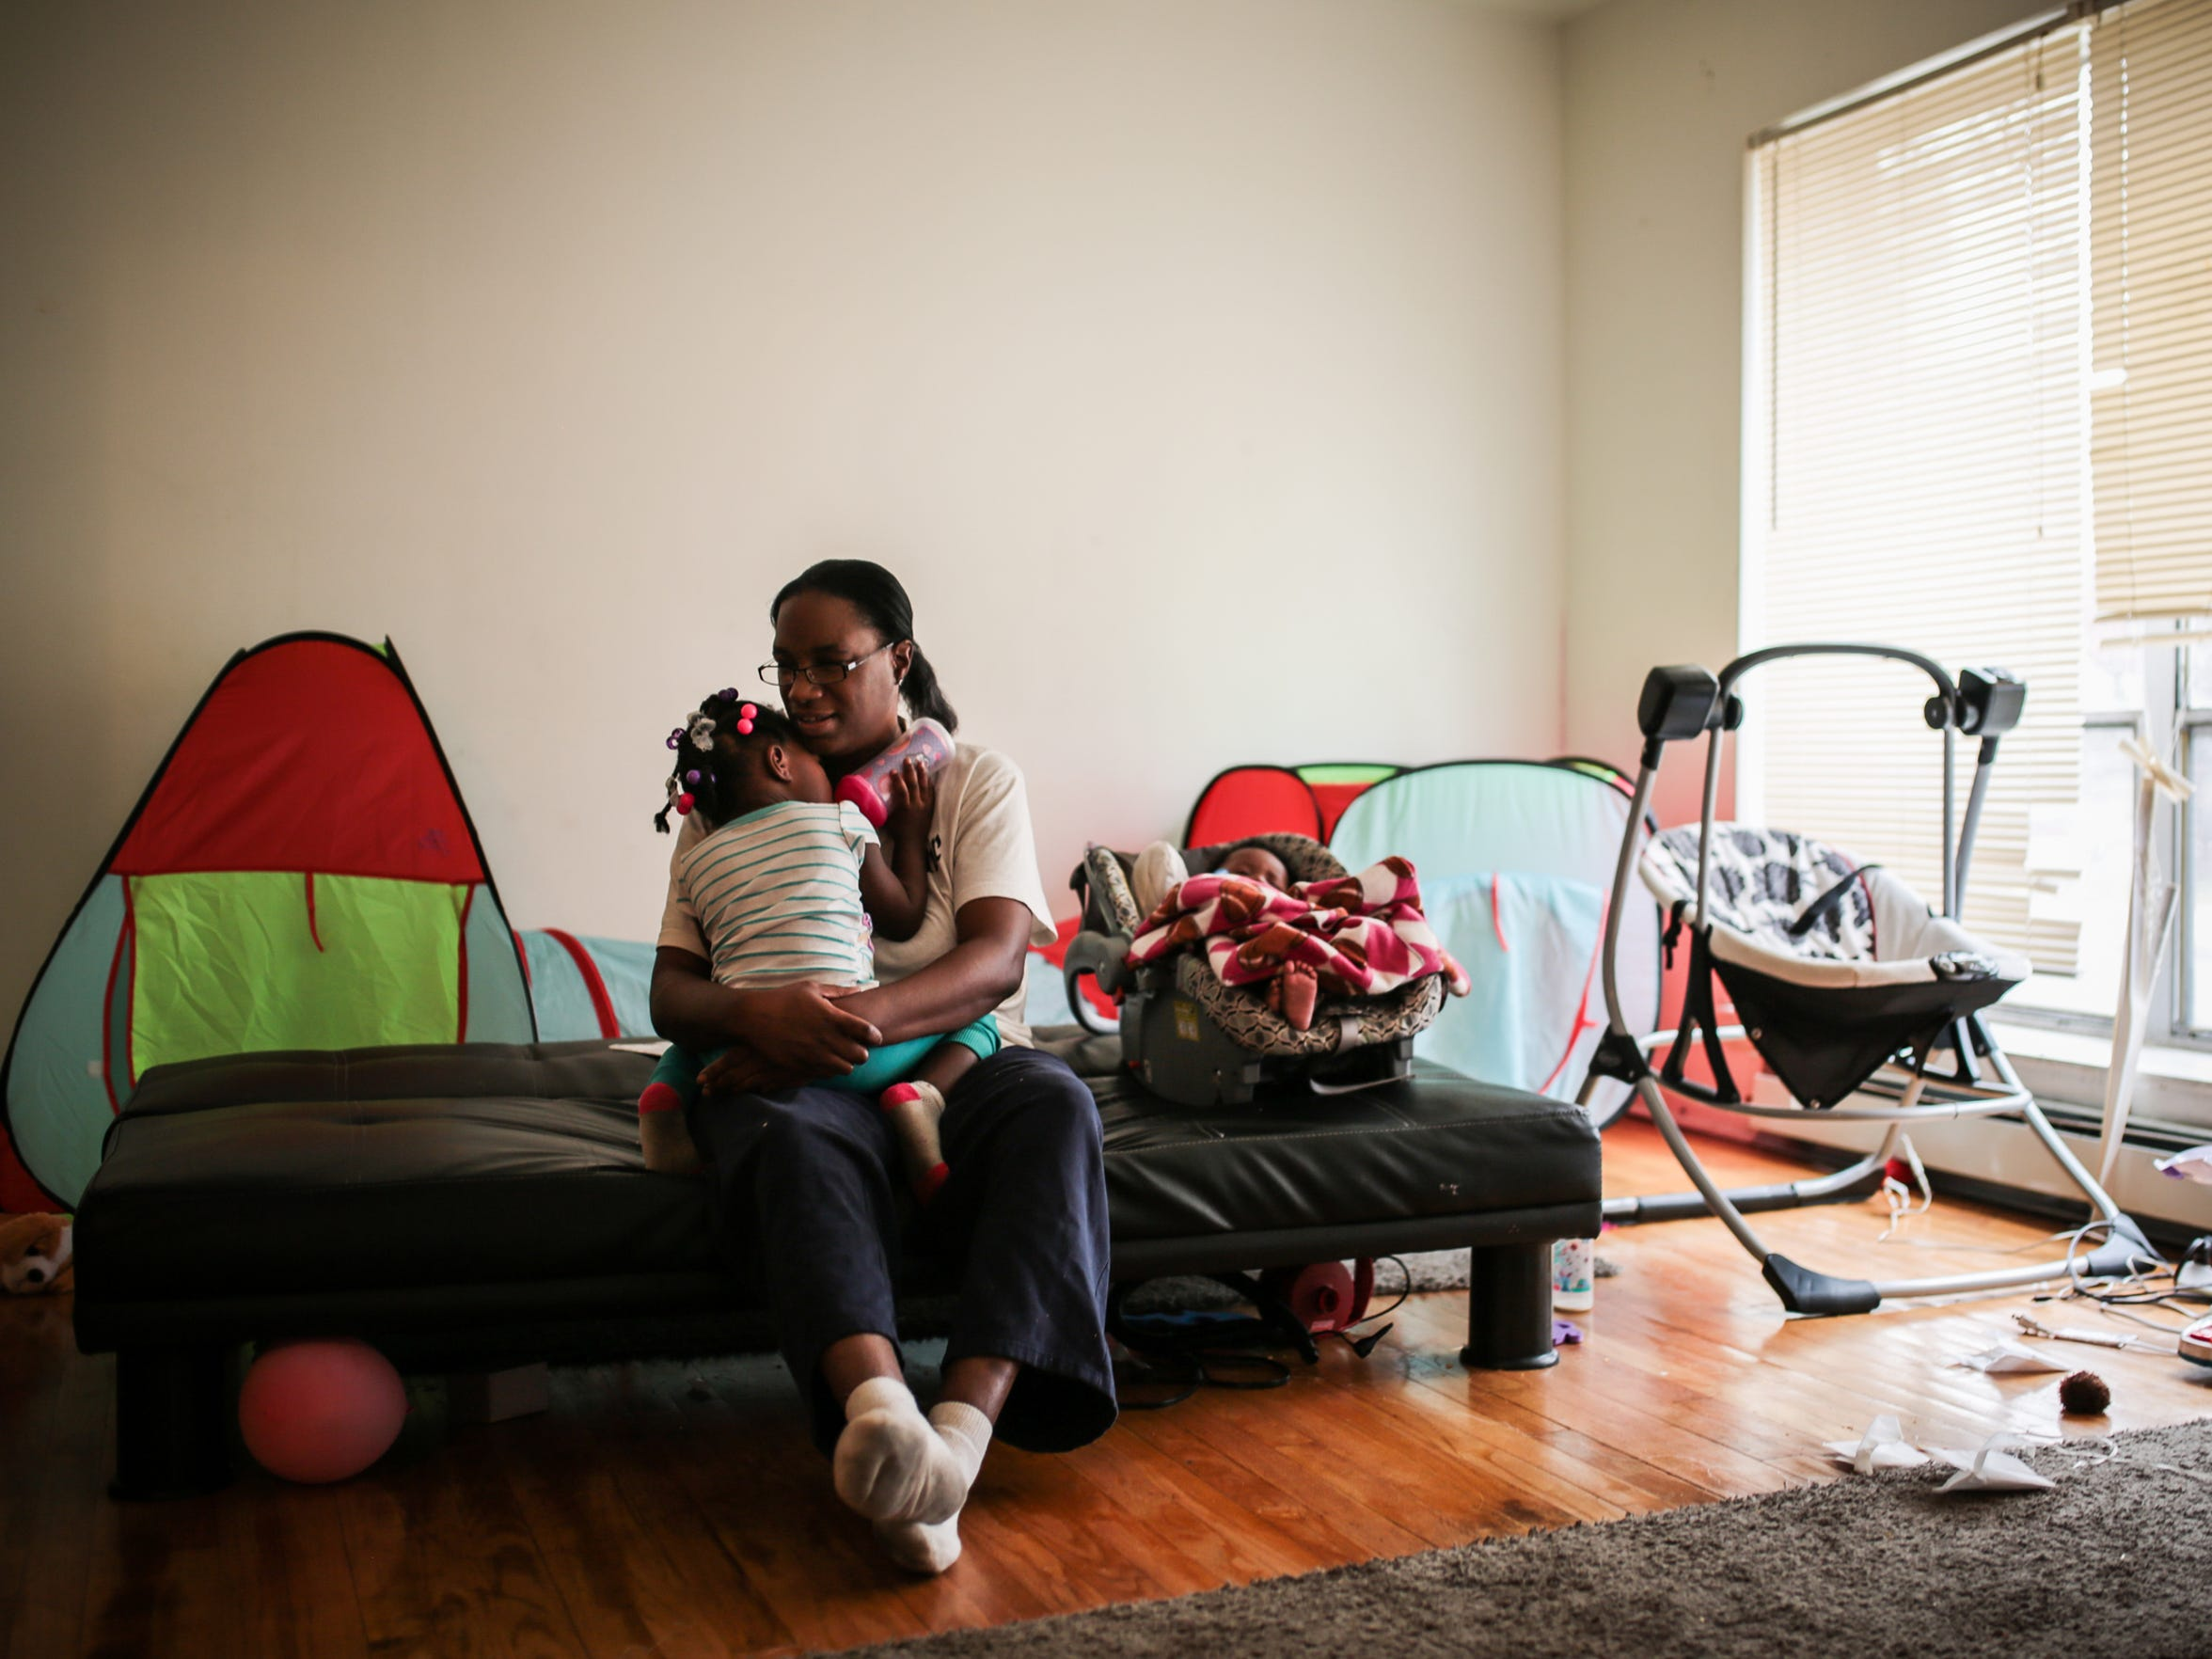 Felicia Darnell, 40, of Detroit, holds her 2-year-old daughter Zoey Darnell, 2, while her 4-month-old daughter Geneva Darnell sleeps inside their apartment on Detroit's east side.